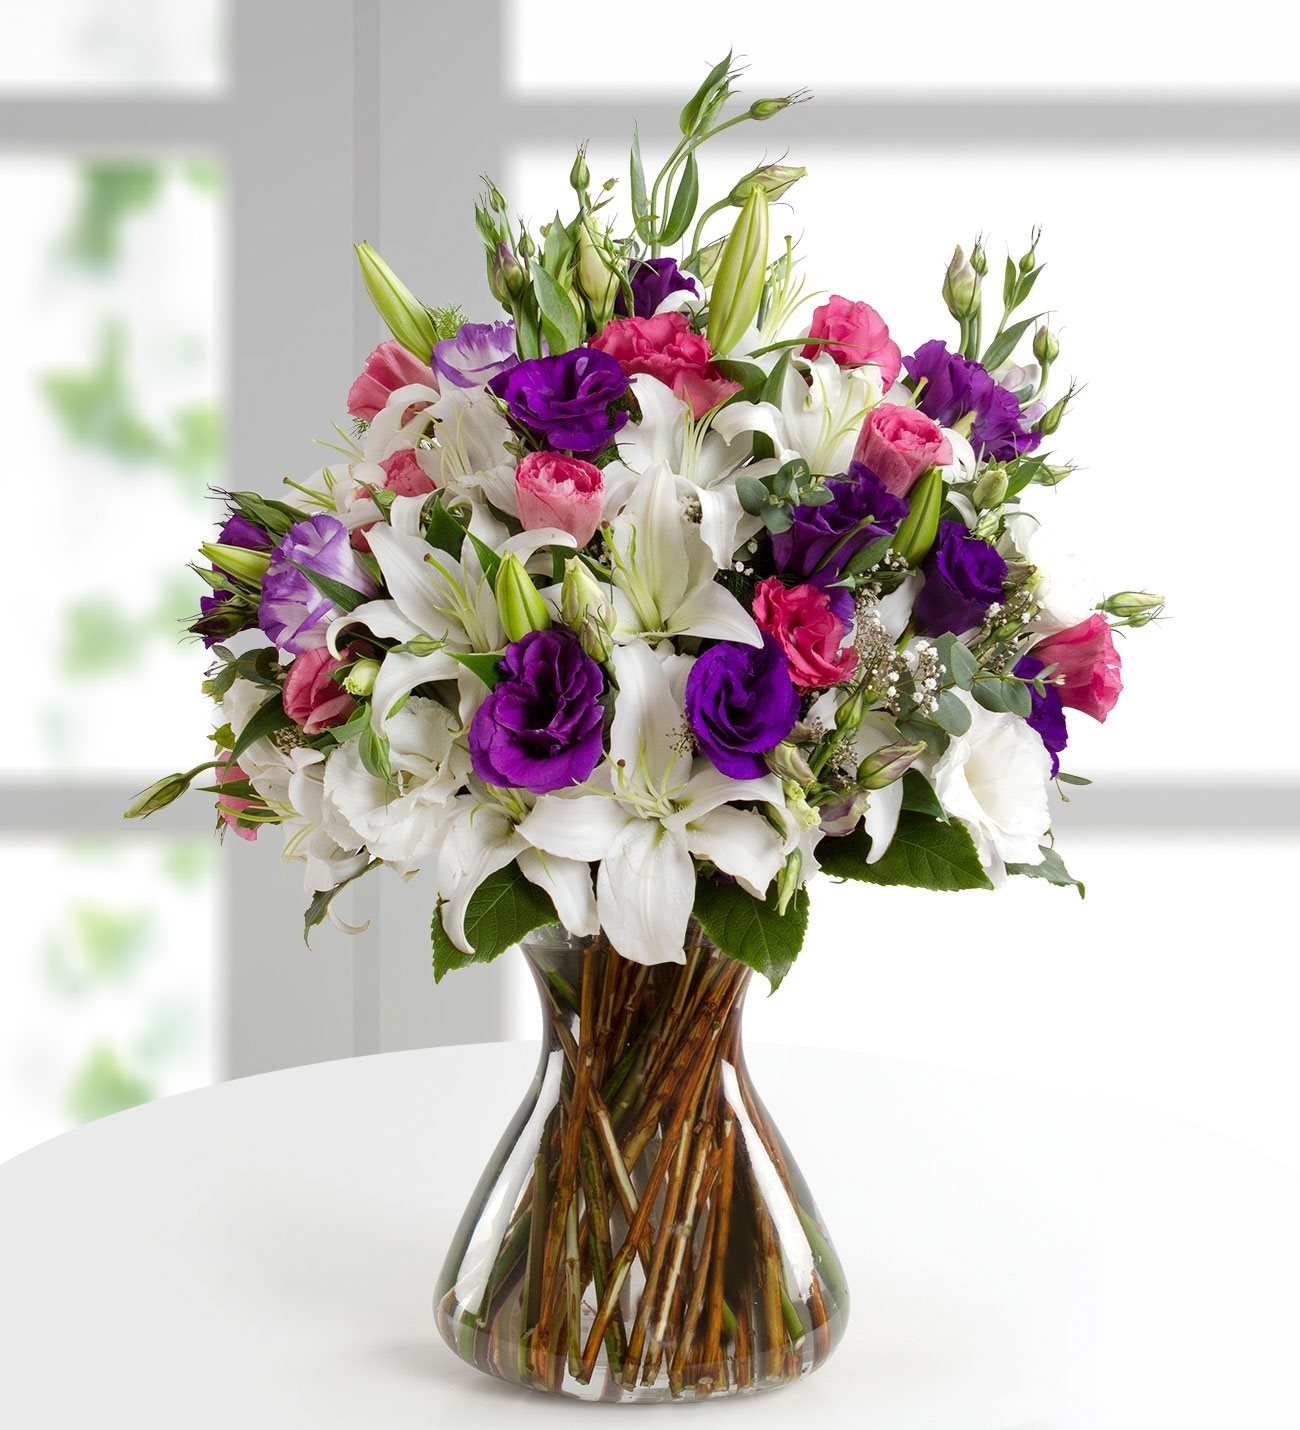 Pink and purple lilies and lisianthus izmirmasajfo